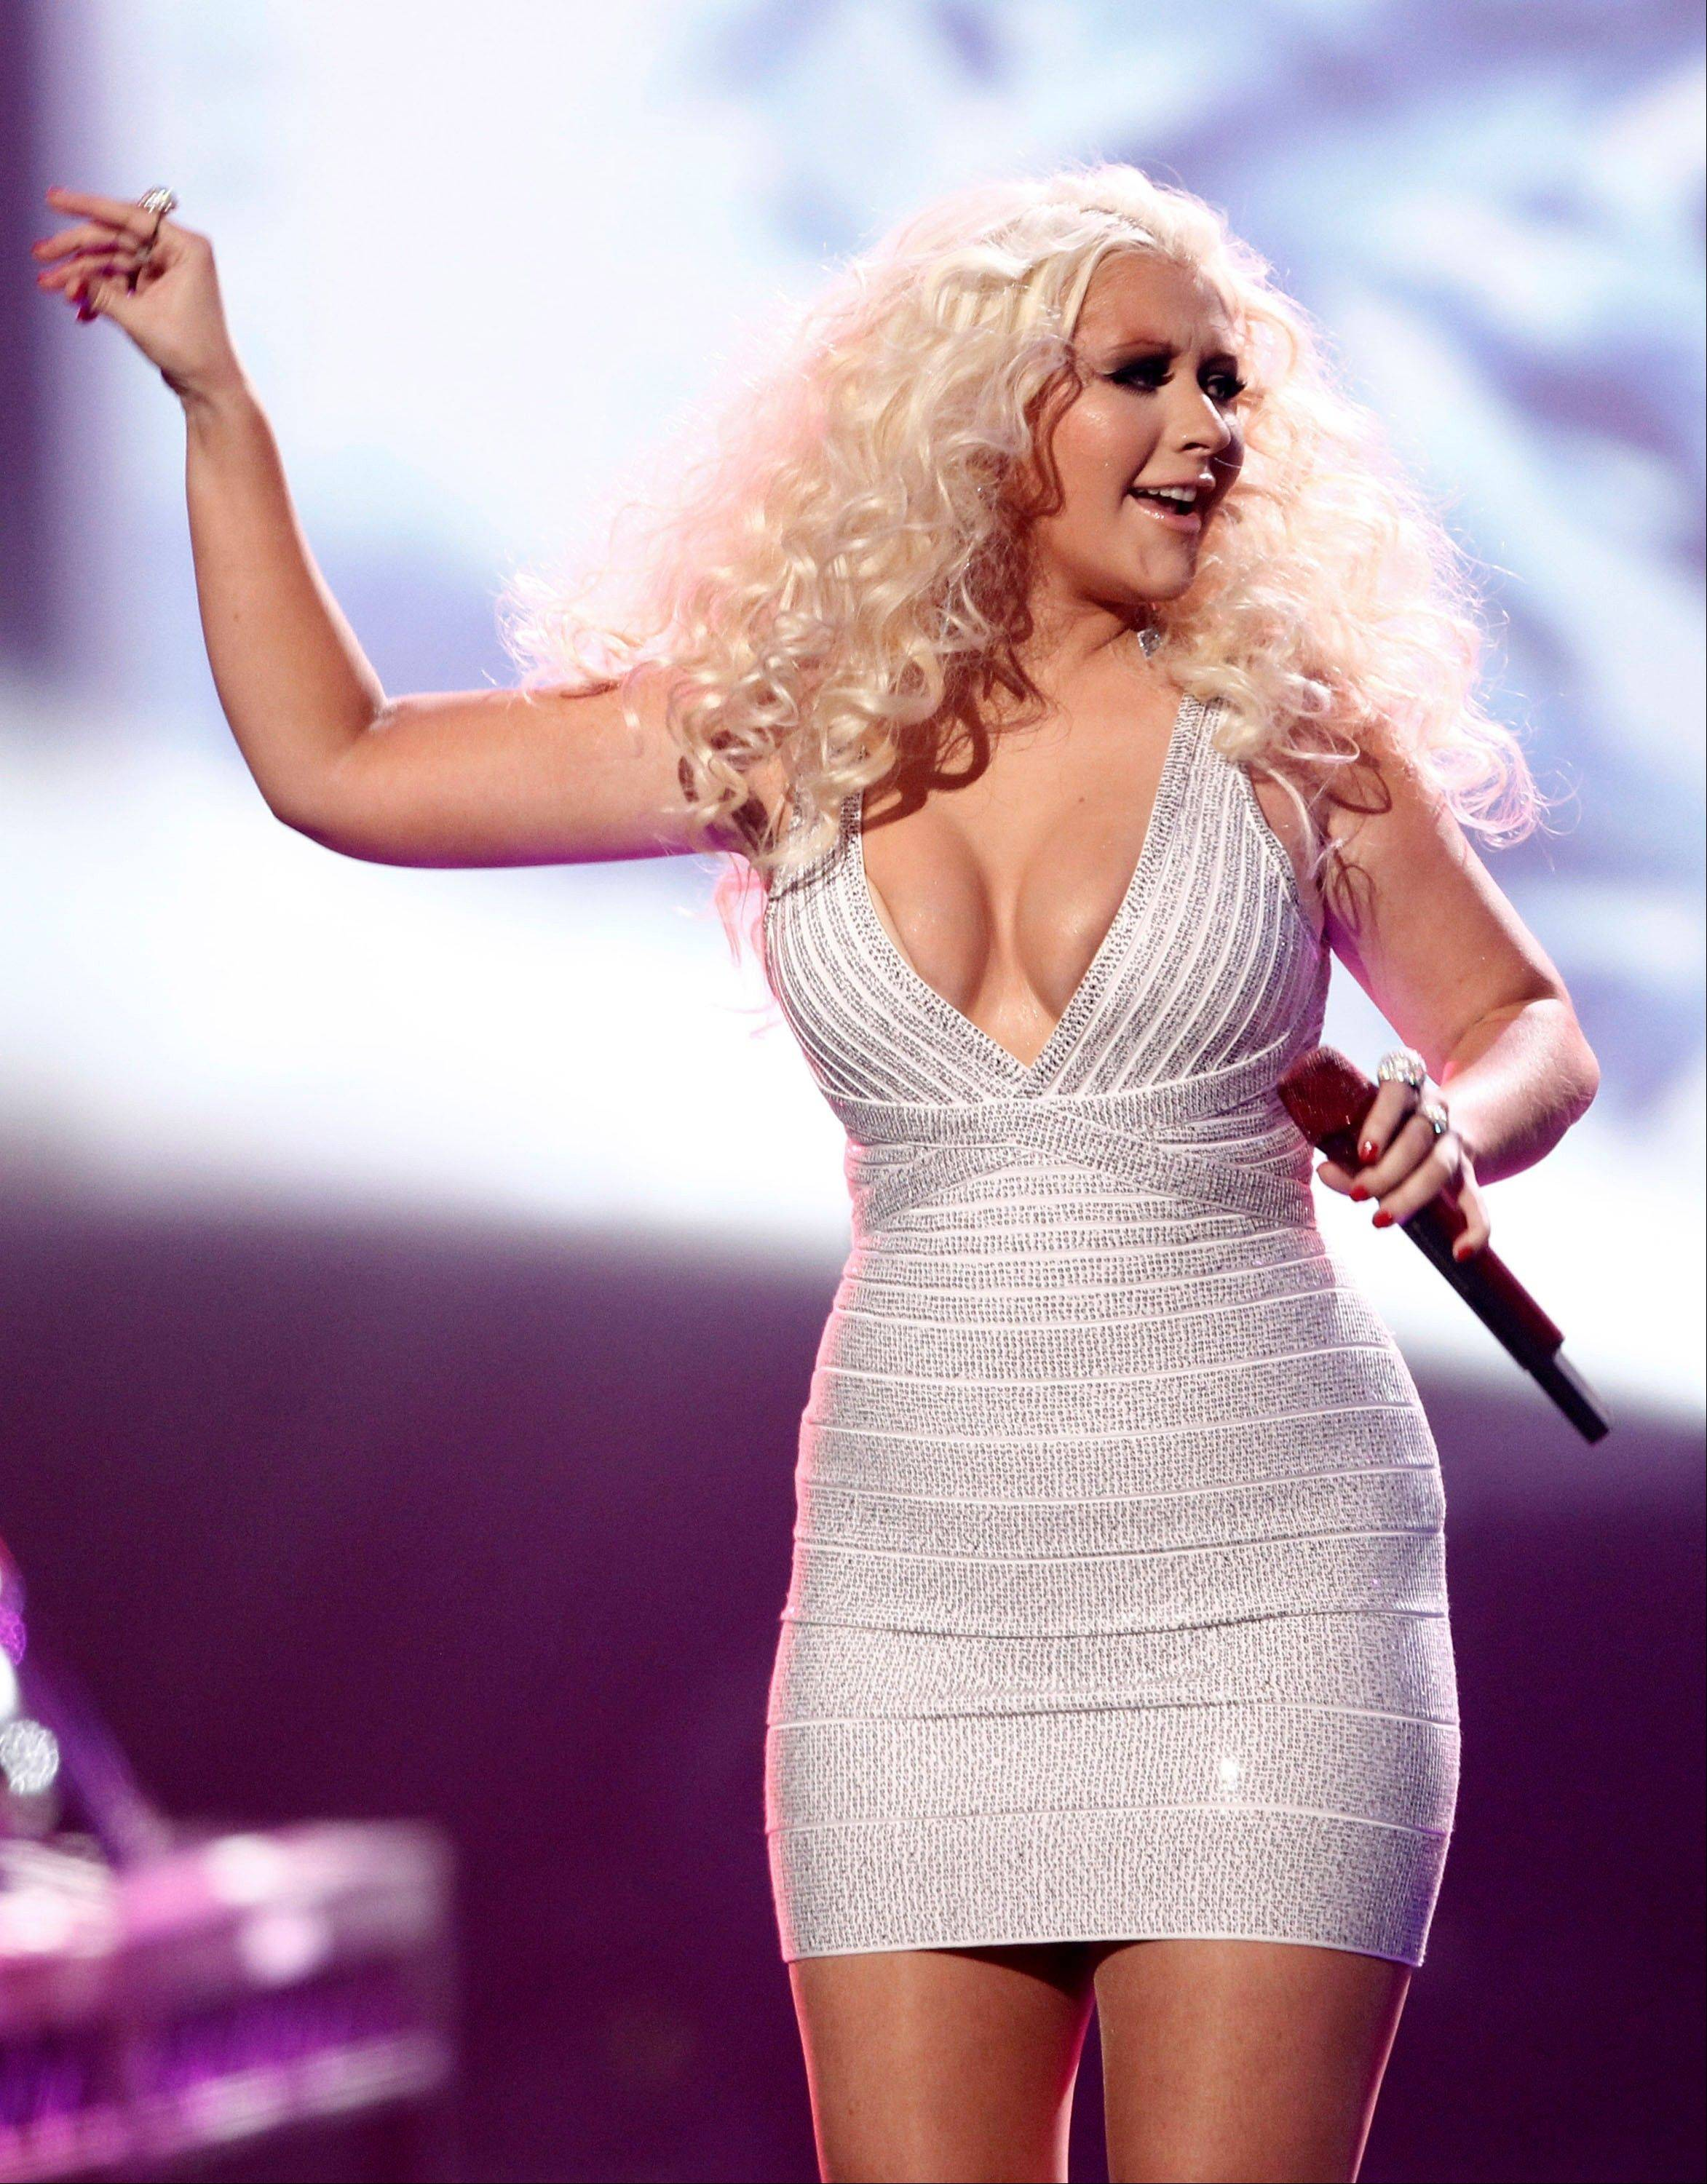 Christina Aguilera performs at the 39th Annual American Music Awards on Sunday, Nov. 20, 2011 in Los Angeles.